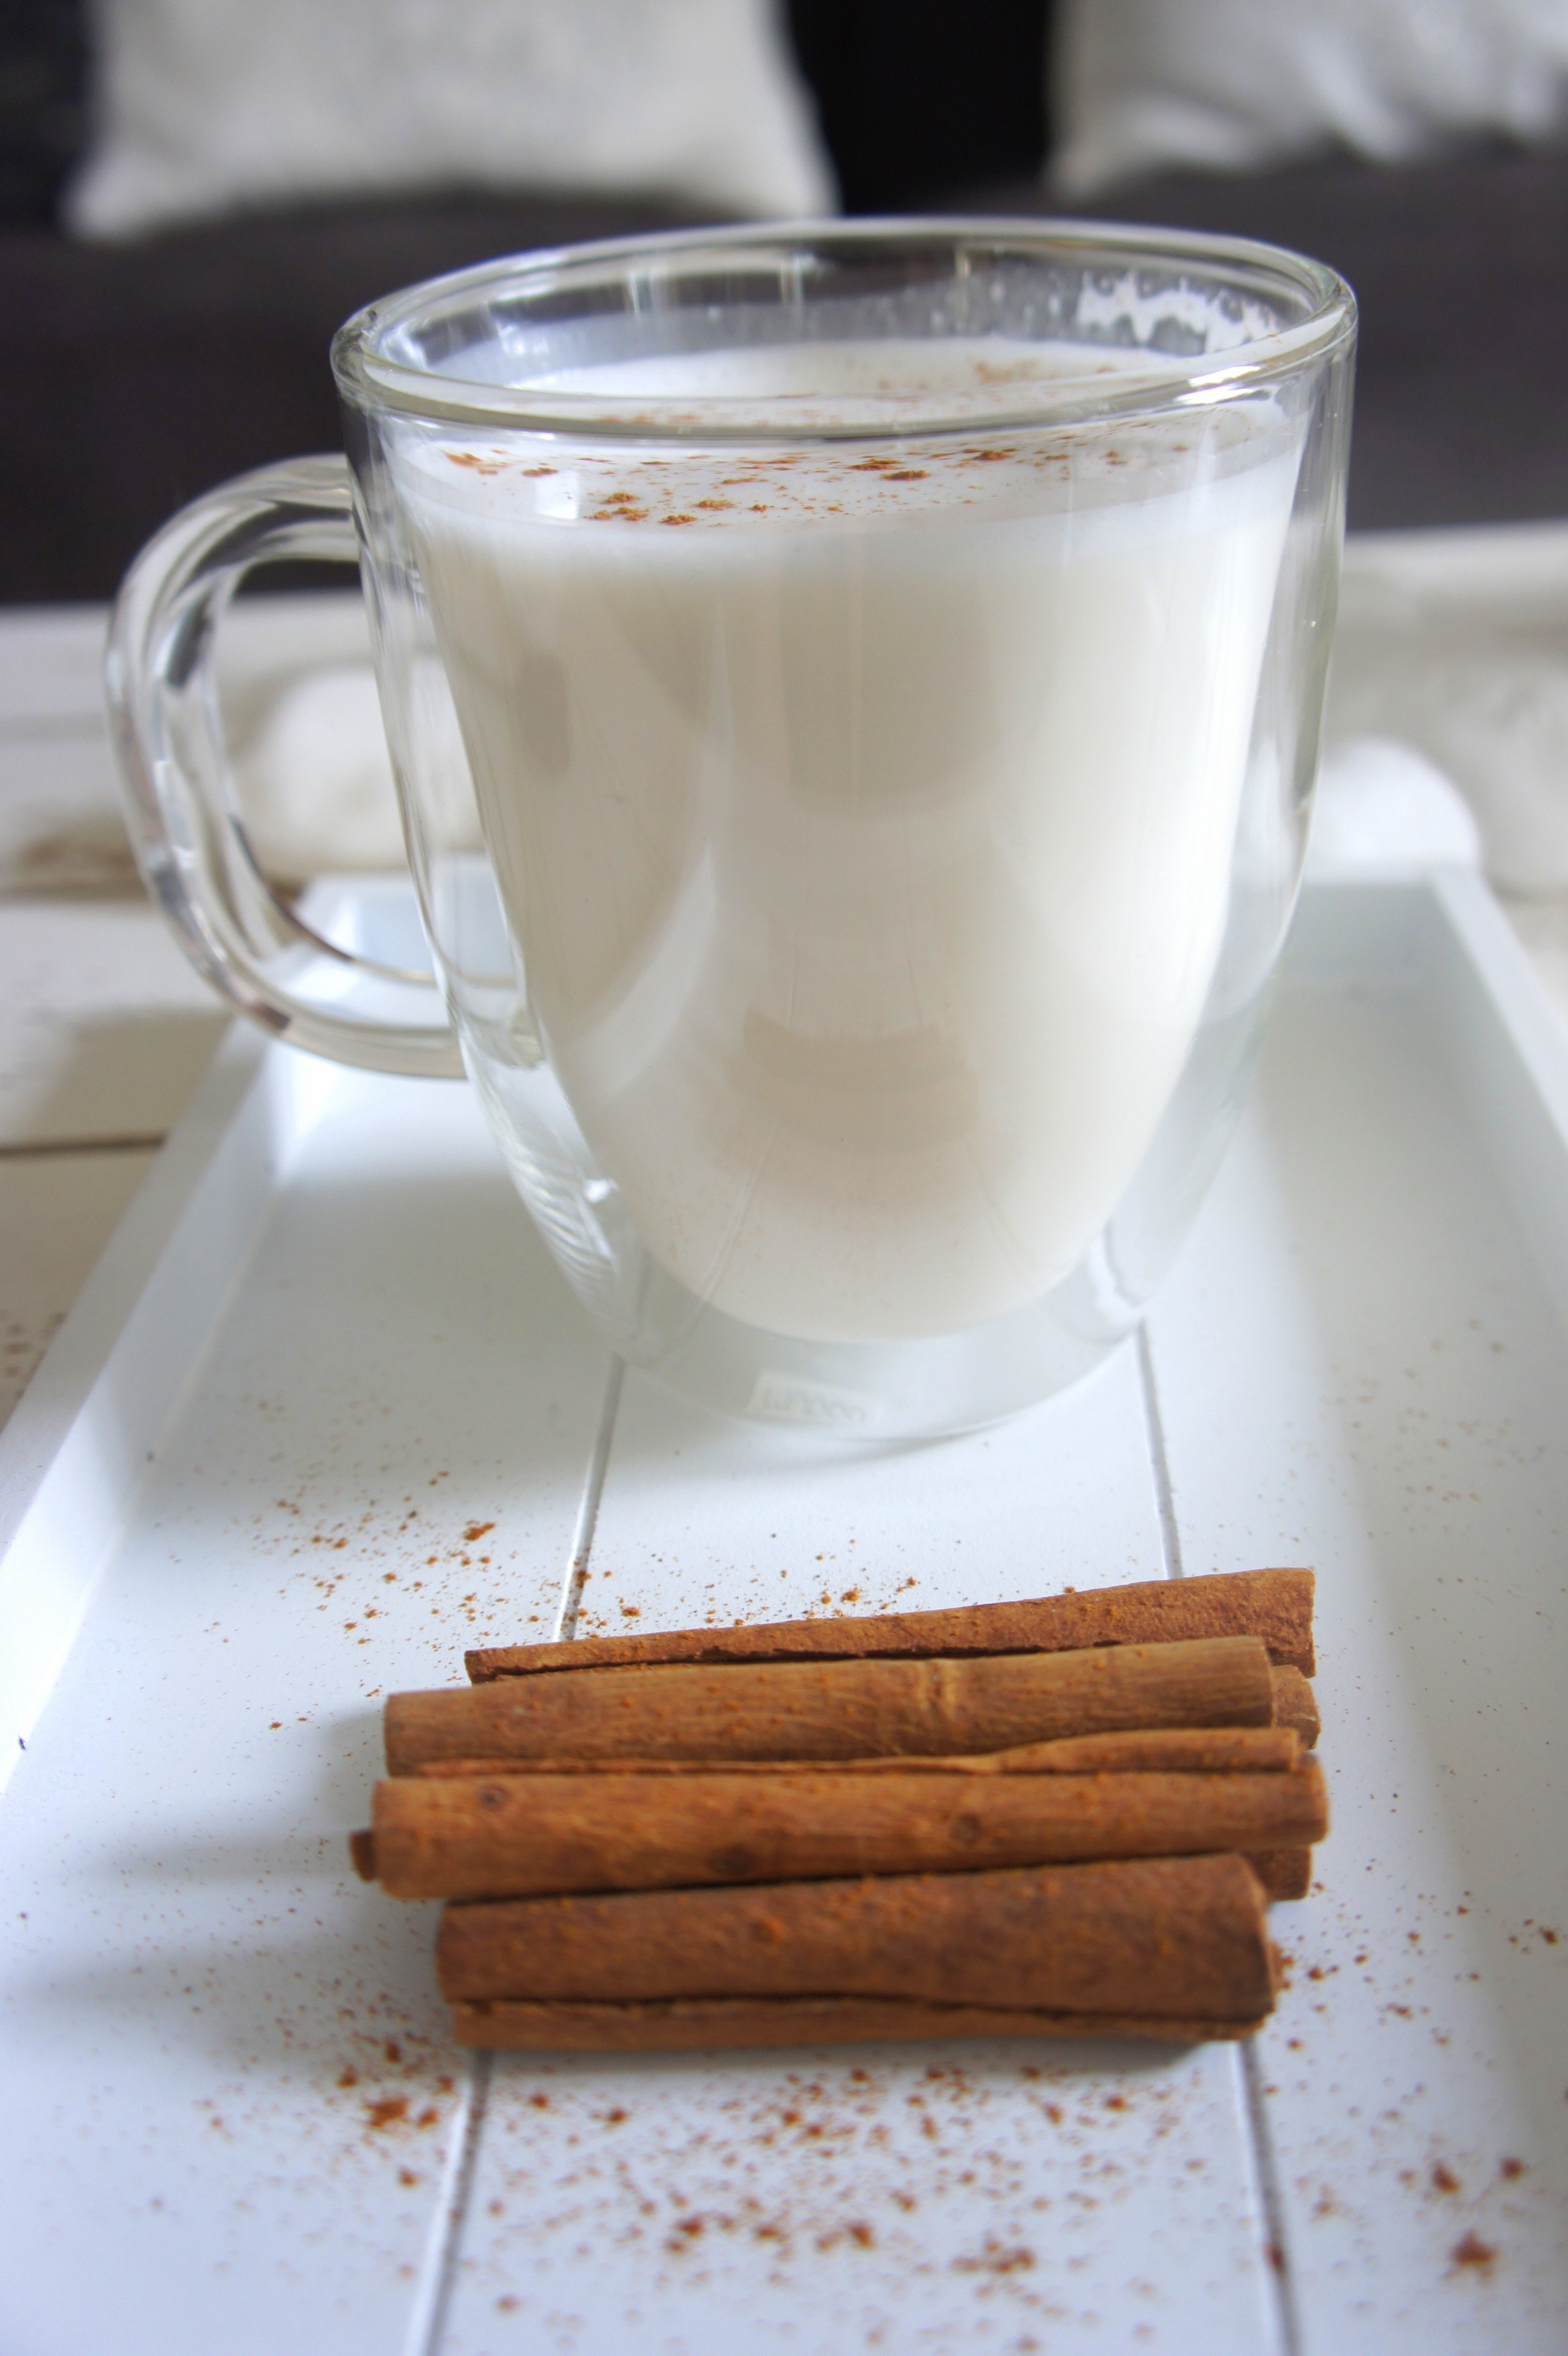 Cinnamon sticks beside the glass of milk photo